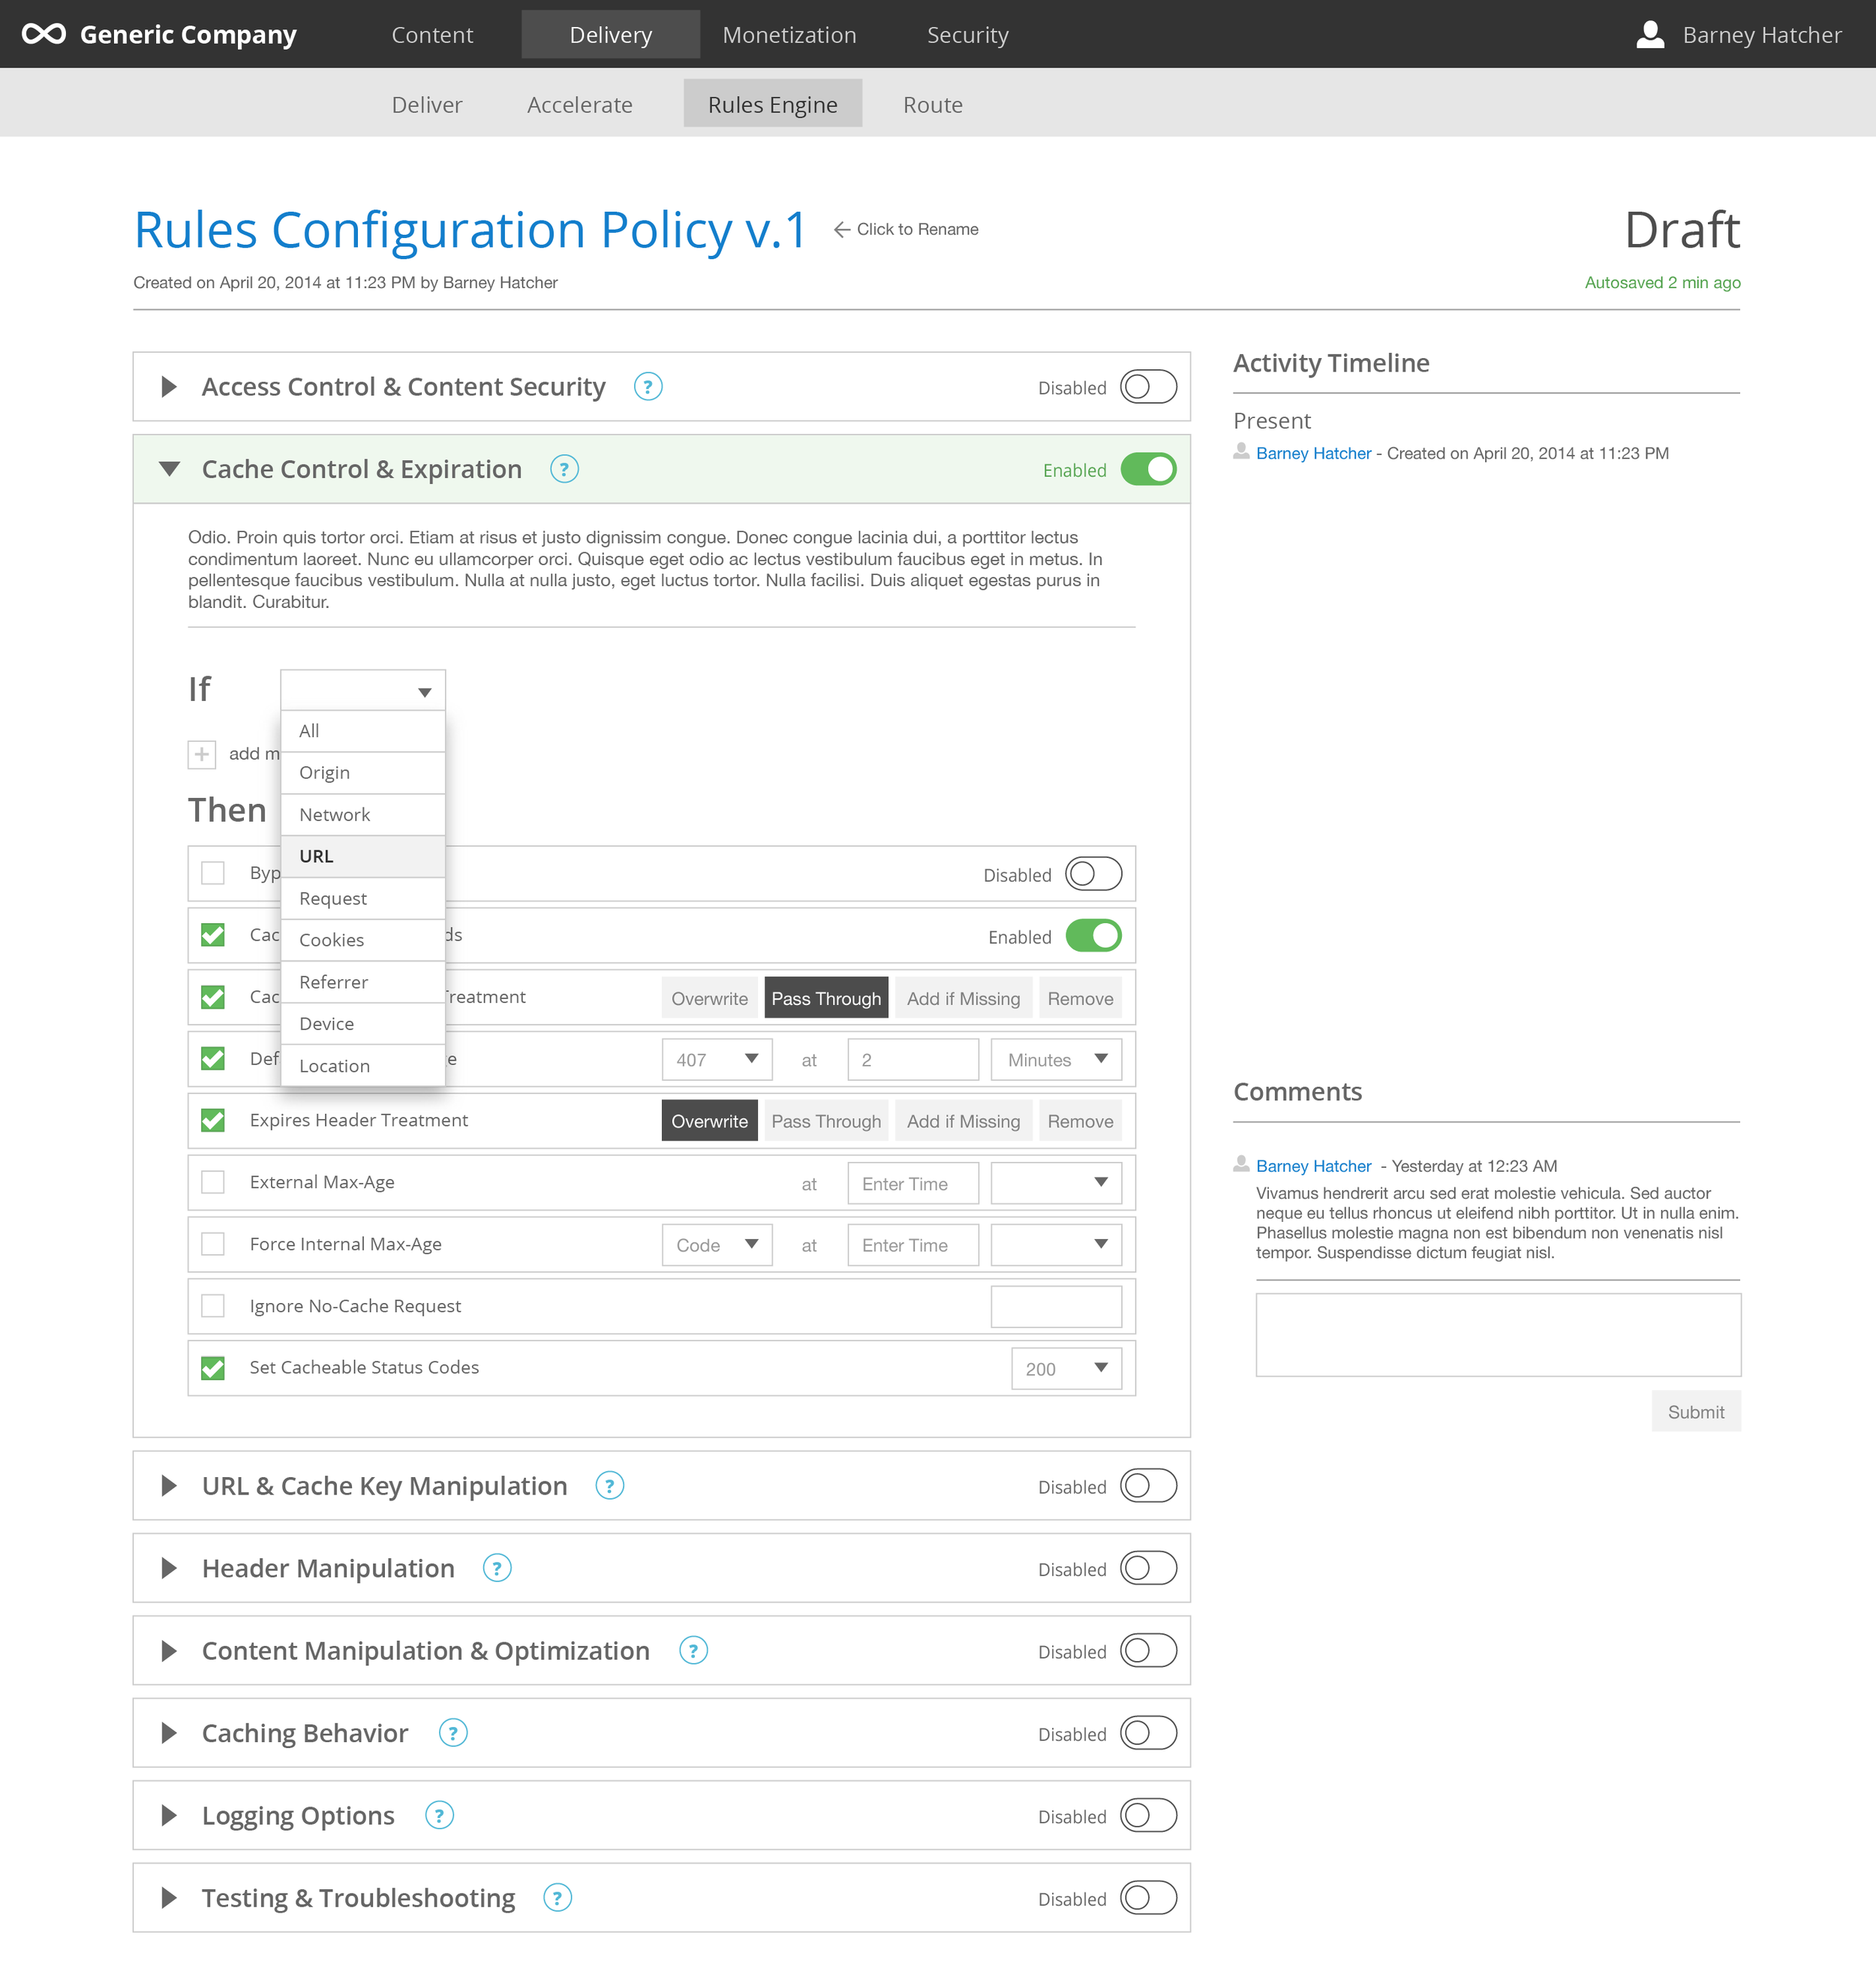 ux-rules-engine-v1_configuration policy-draft-1 enabled-features populated-match dropdown-url.png